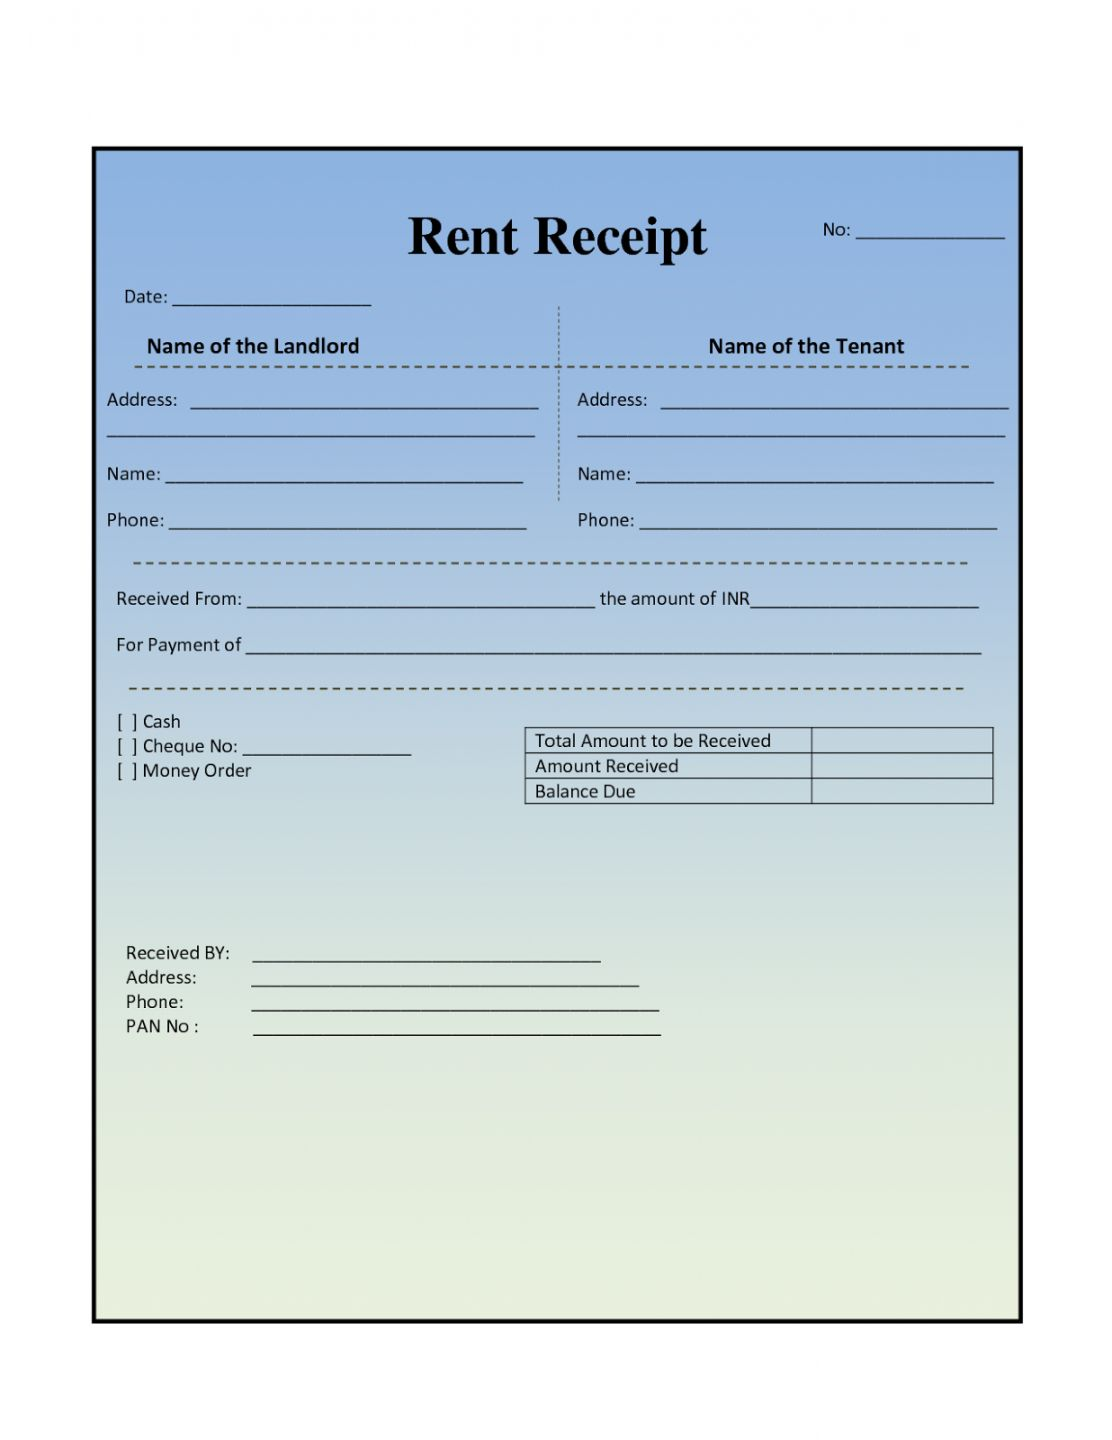 Get Our Printable Rental Property Receipt Template Invoice Template Invoice Format In Excel Invoice Sample